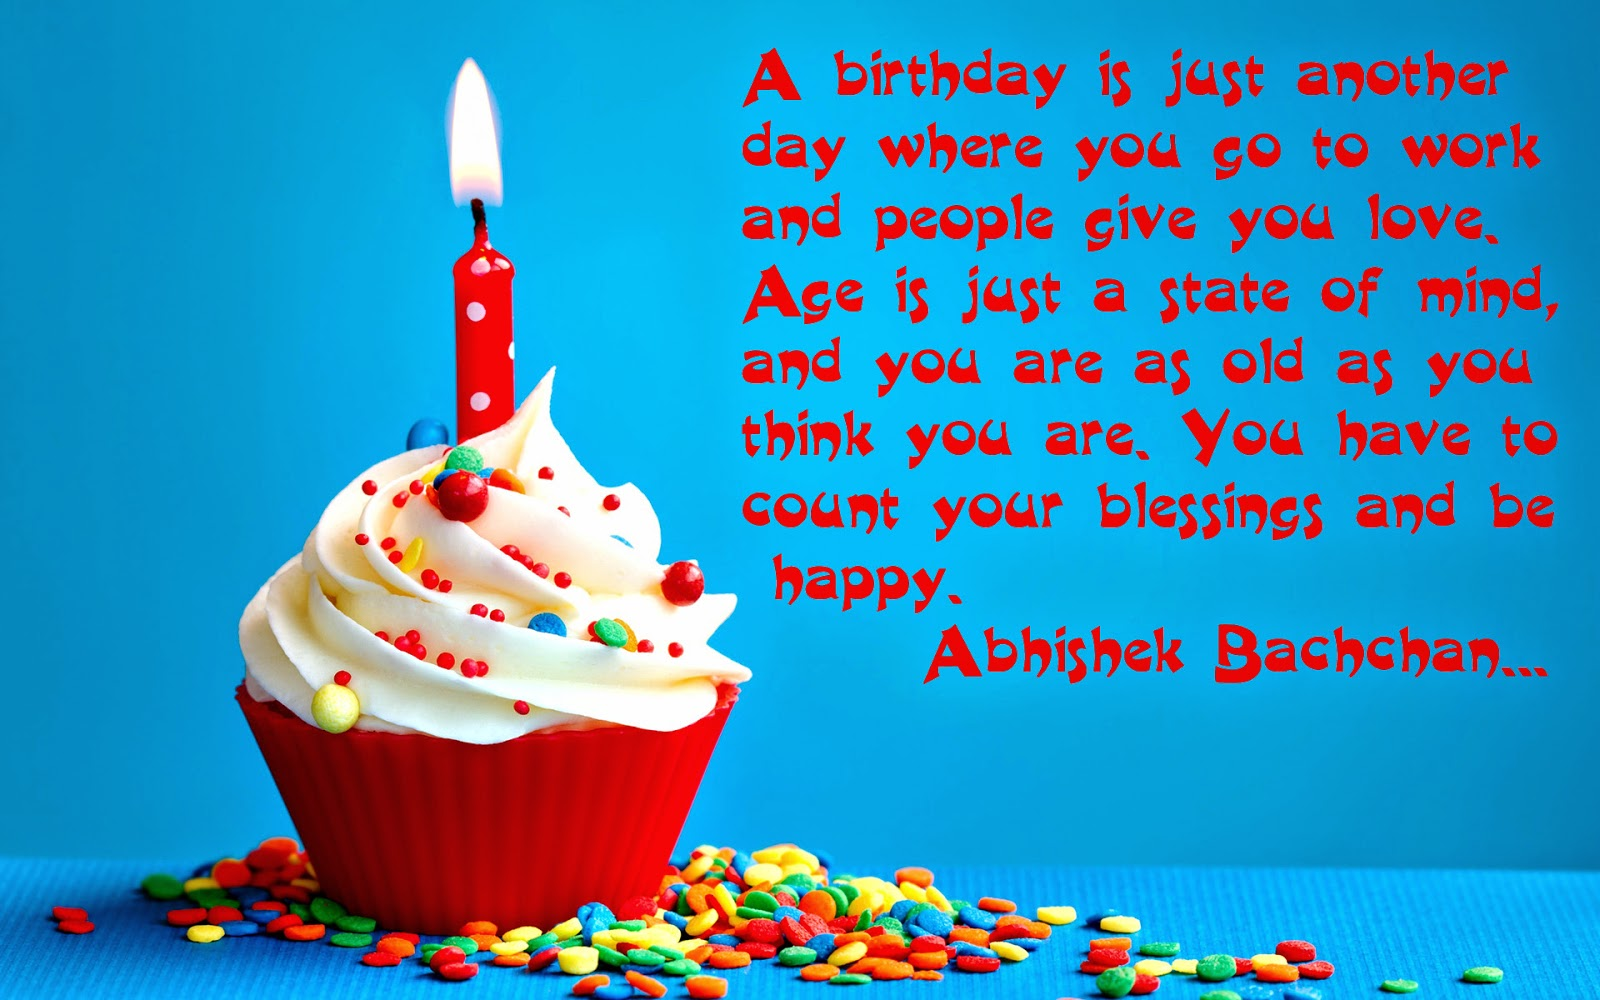 birthday poetry in english ; Birthday-quotes-A-birthday-is-just-another-day-where-you-go